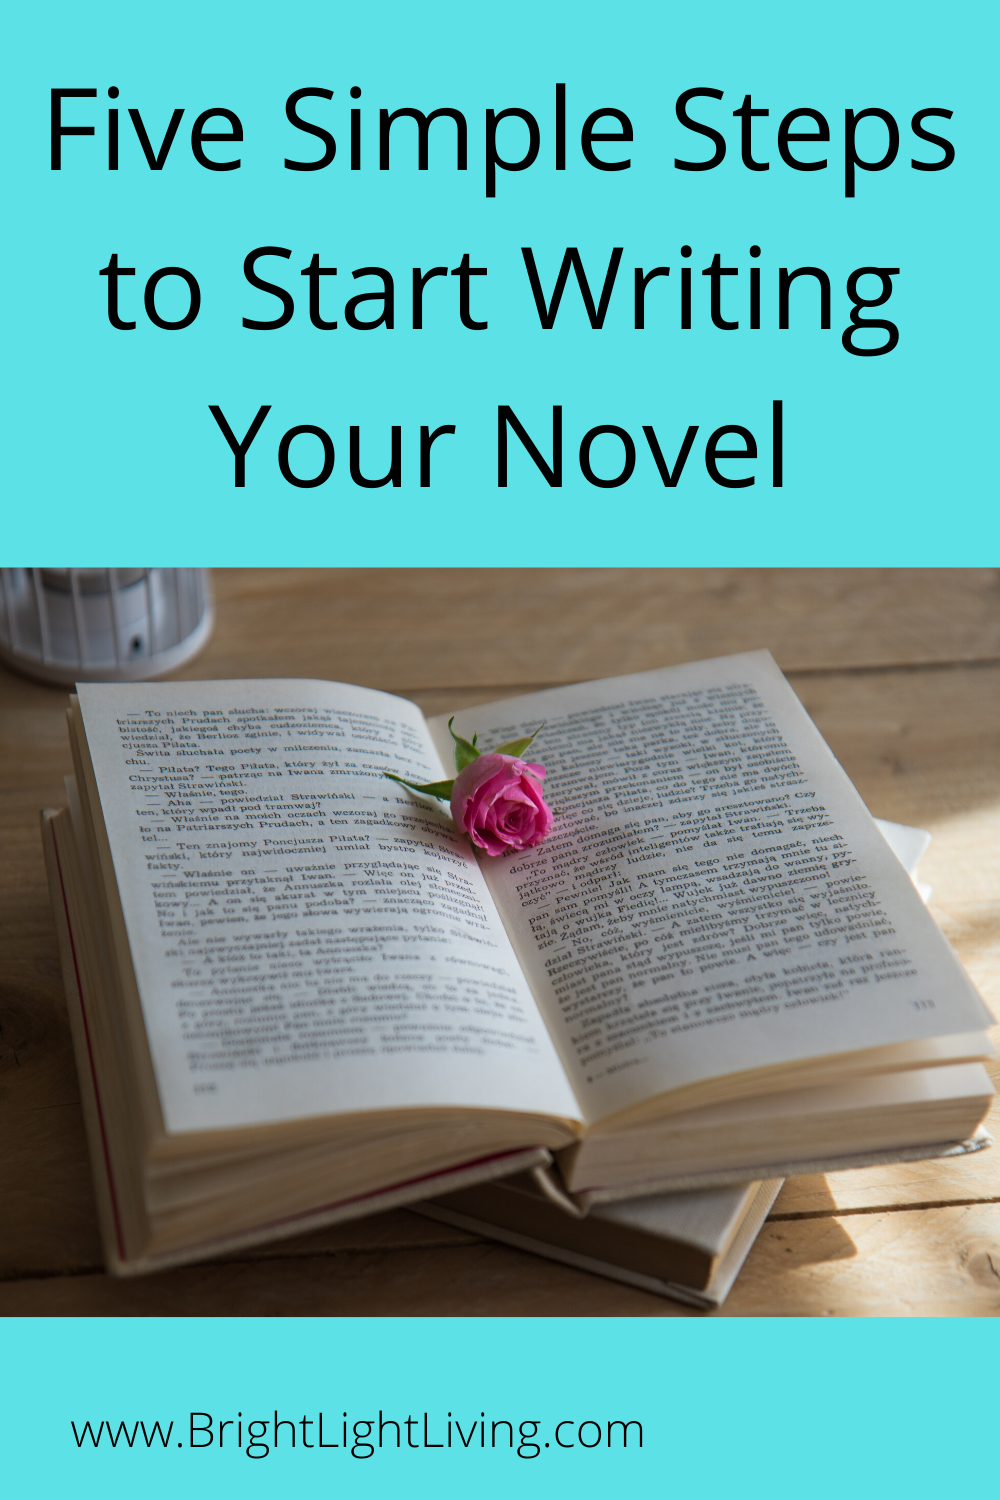 Five Simple Steps to Start Writing Your Novel - Bright Light